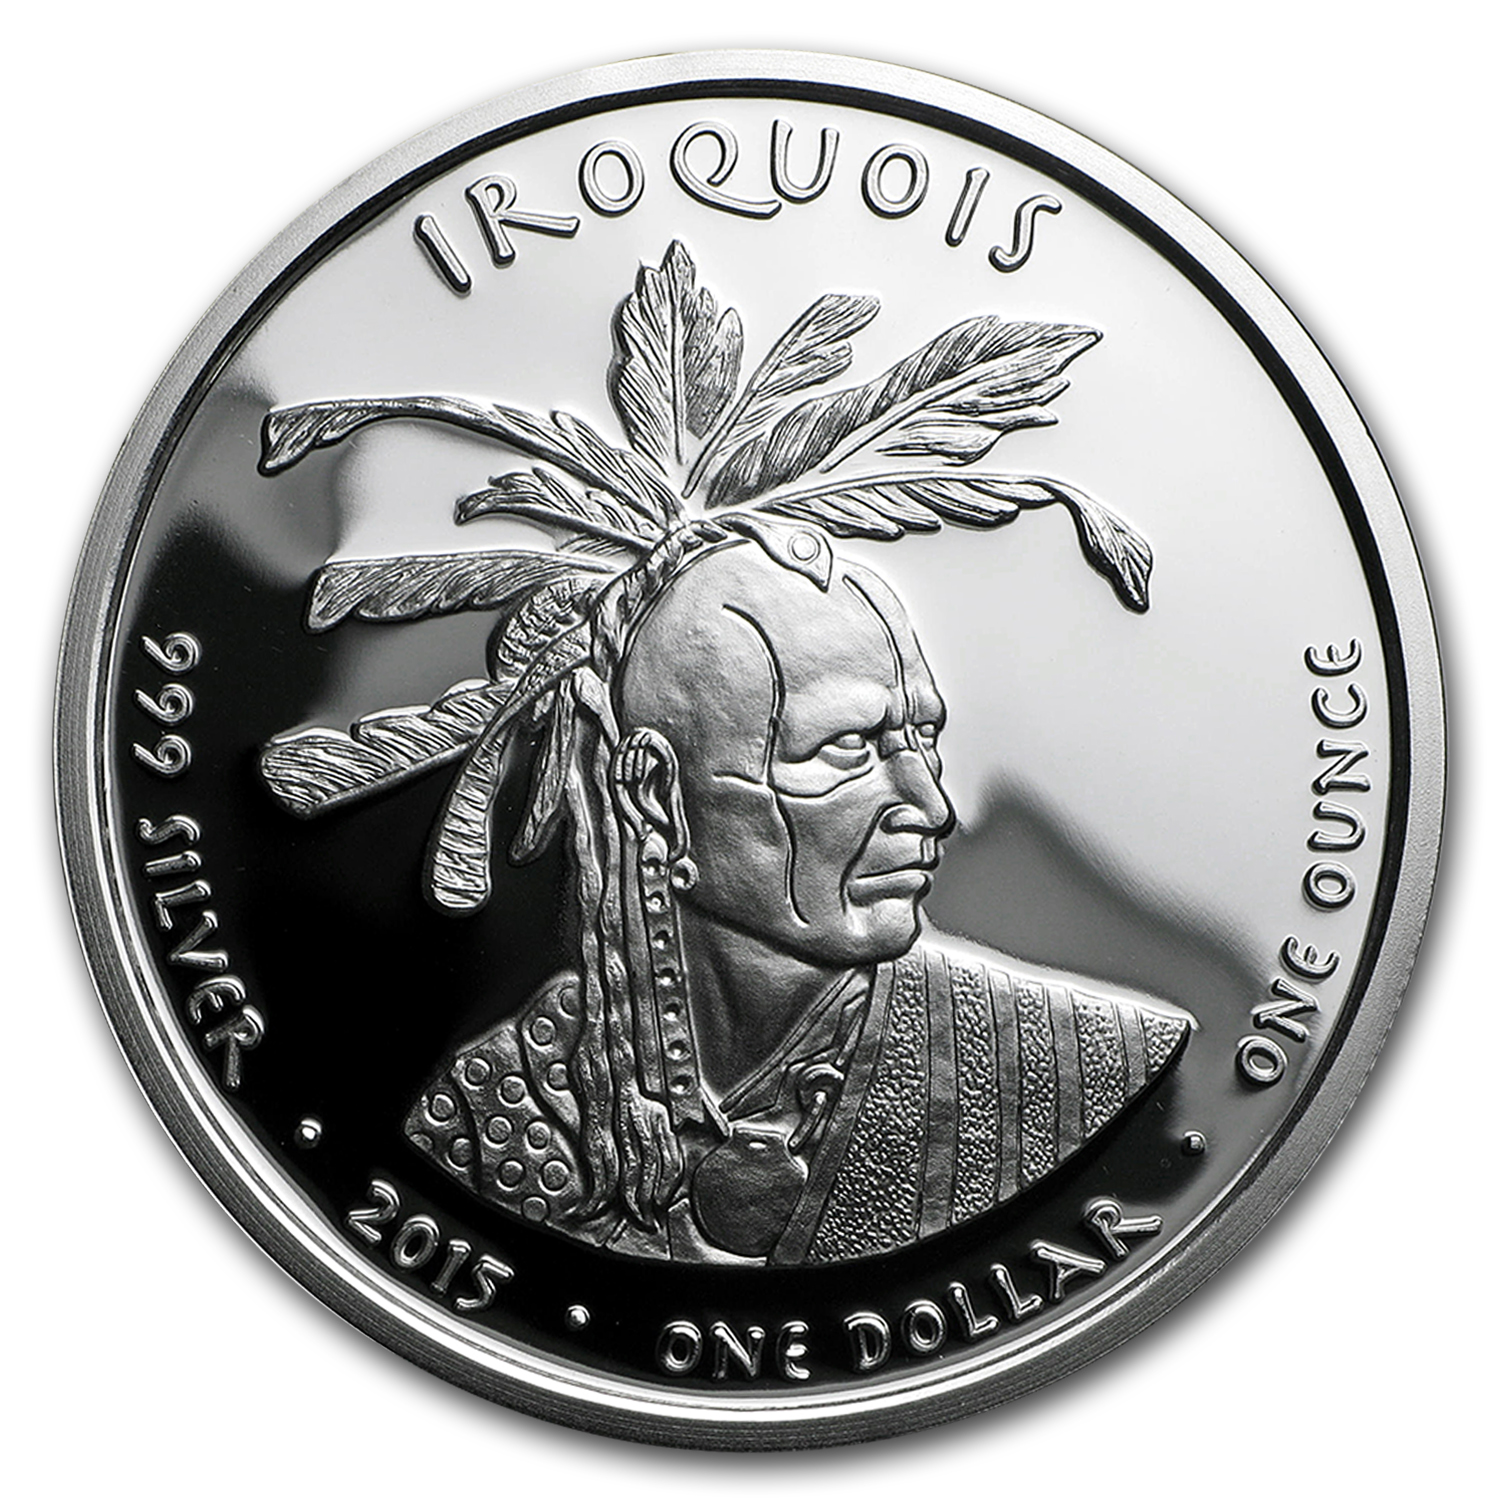 2015 1 oz Silver Proof State Dollars Pennsylvania Iroquois